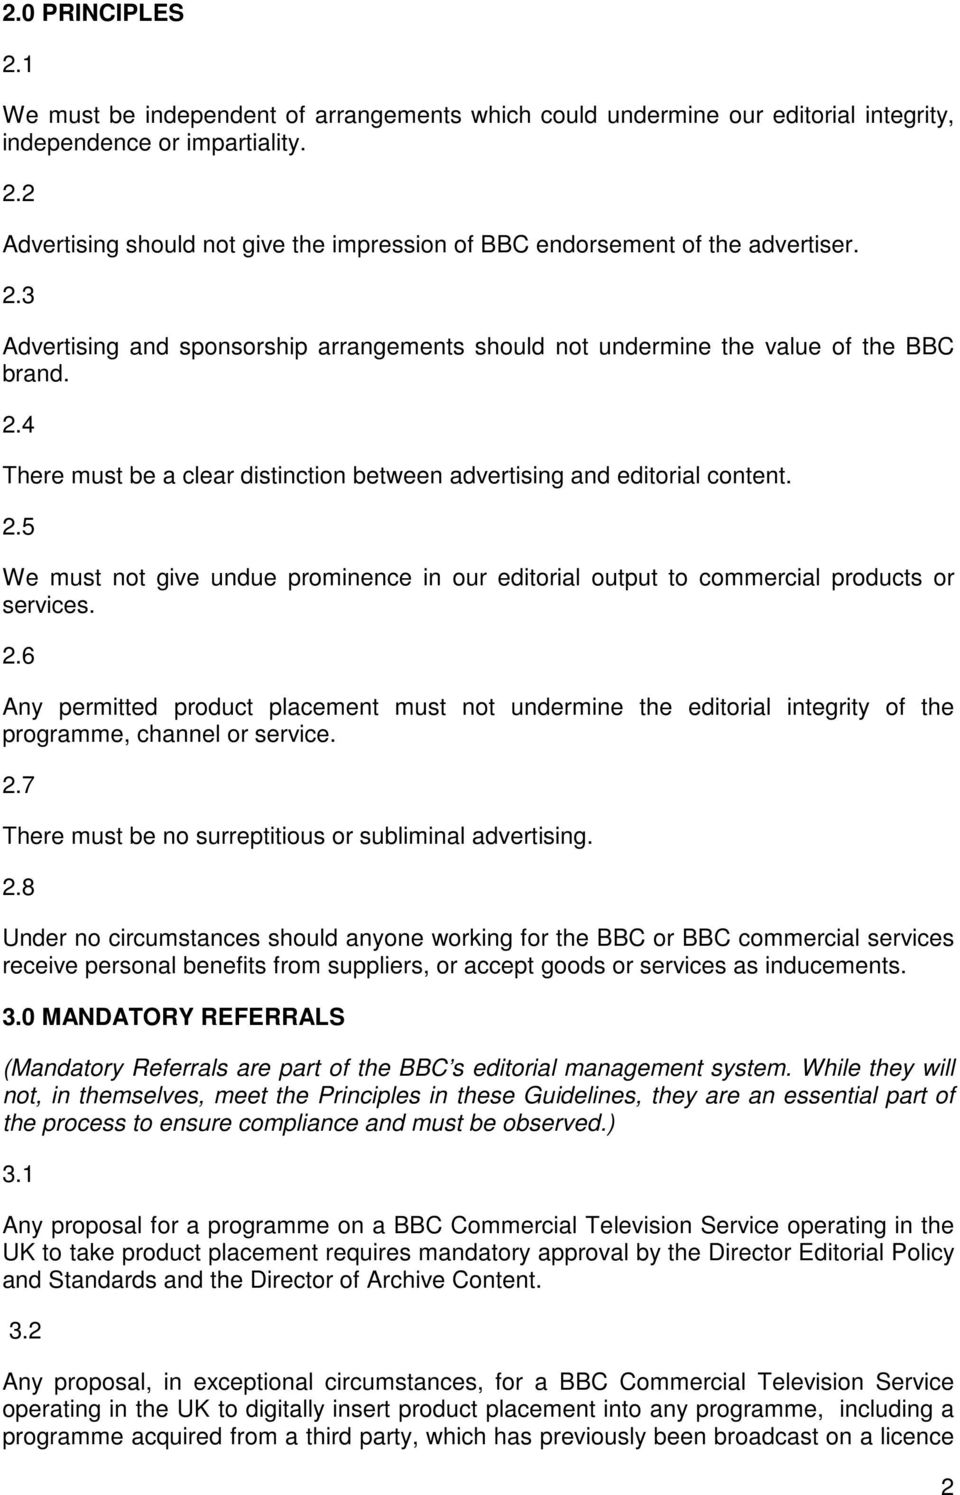 2.6 Any permitted product placement must not undermine the editorial integrity of the programme, channel or service. 2.